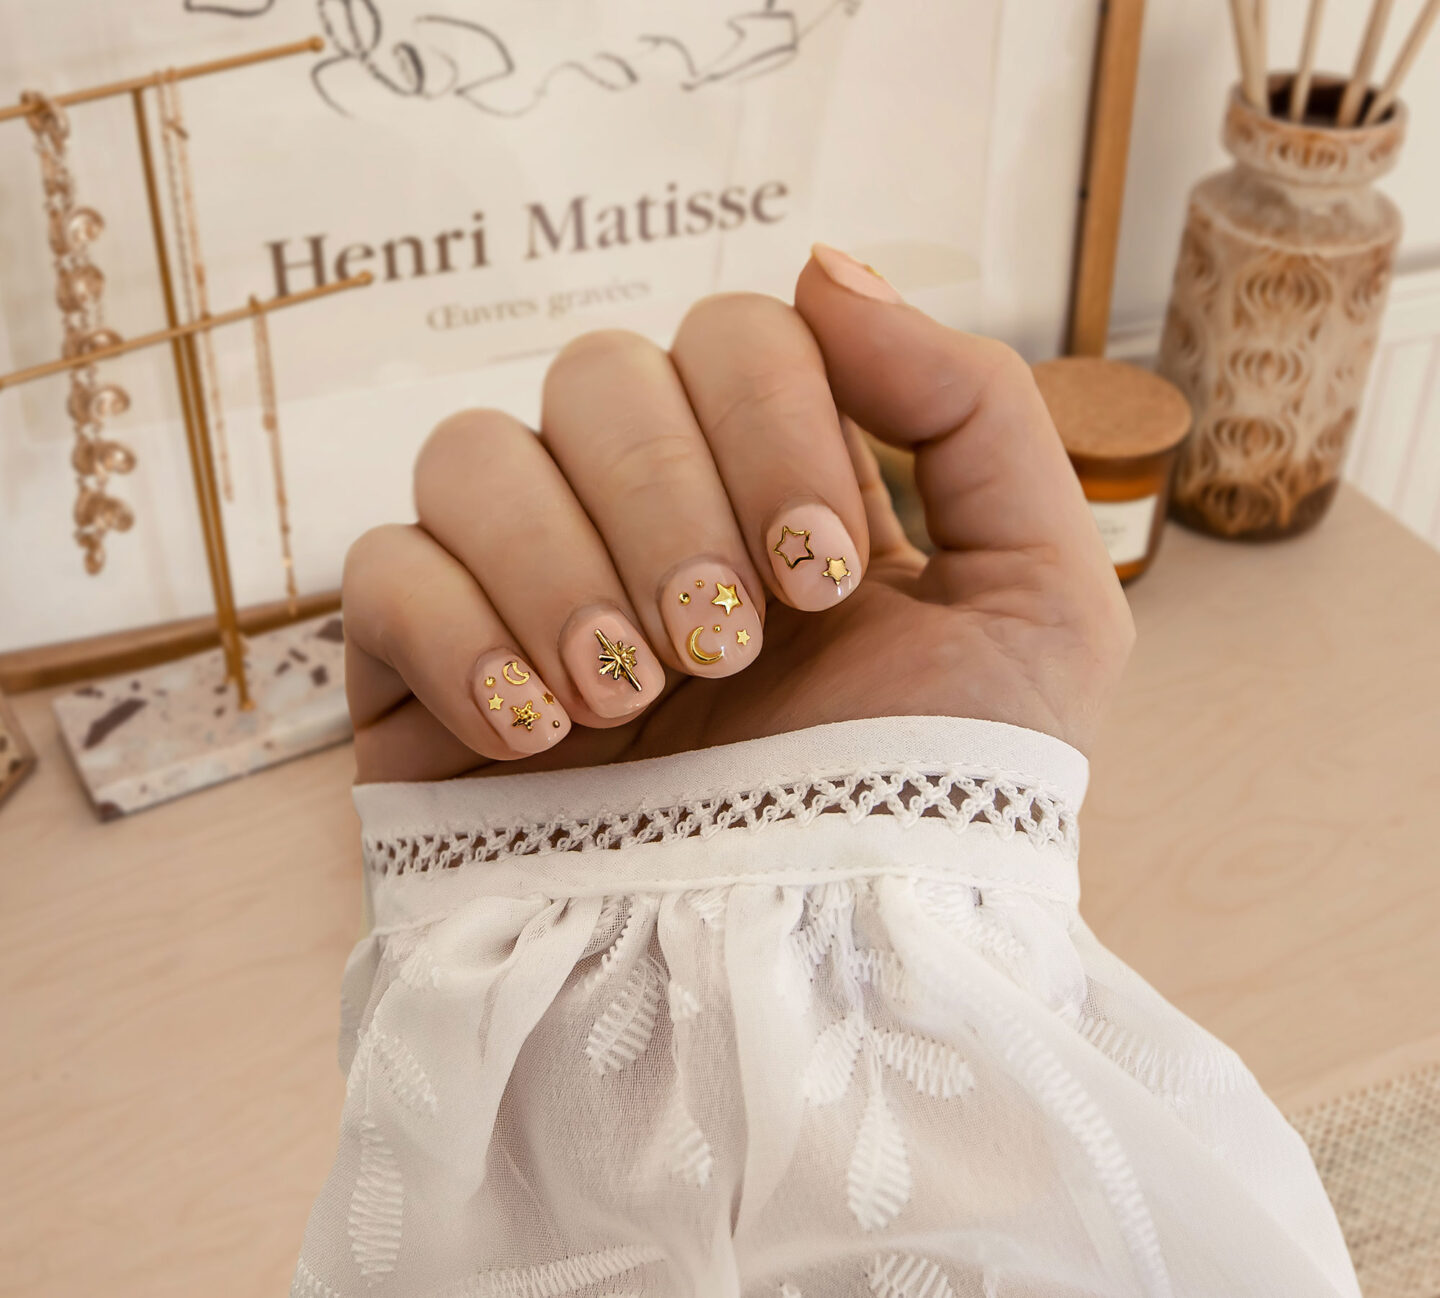 kelseyinlondon-kelsey-heinrichs-growing-nails-how-to-grow-your-nails-nail-art